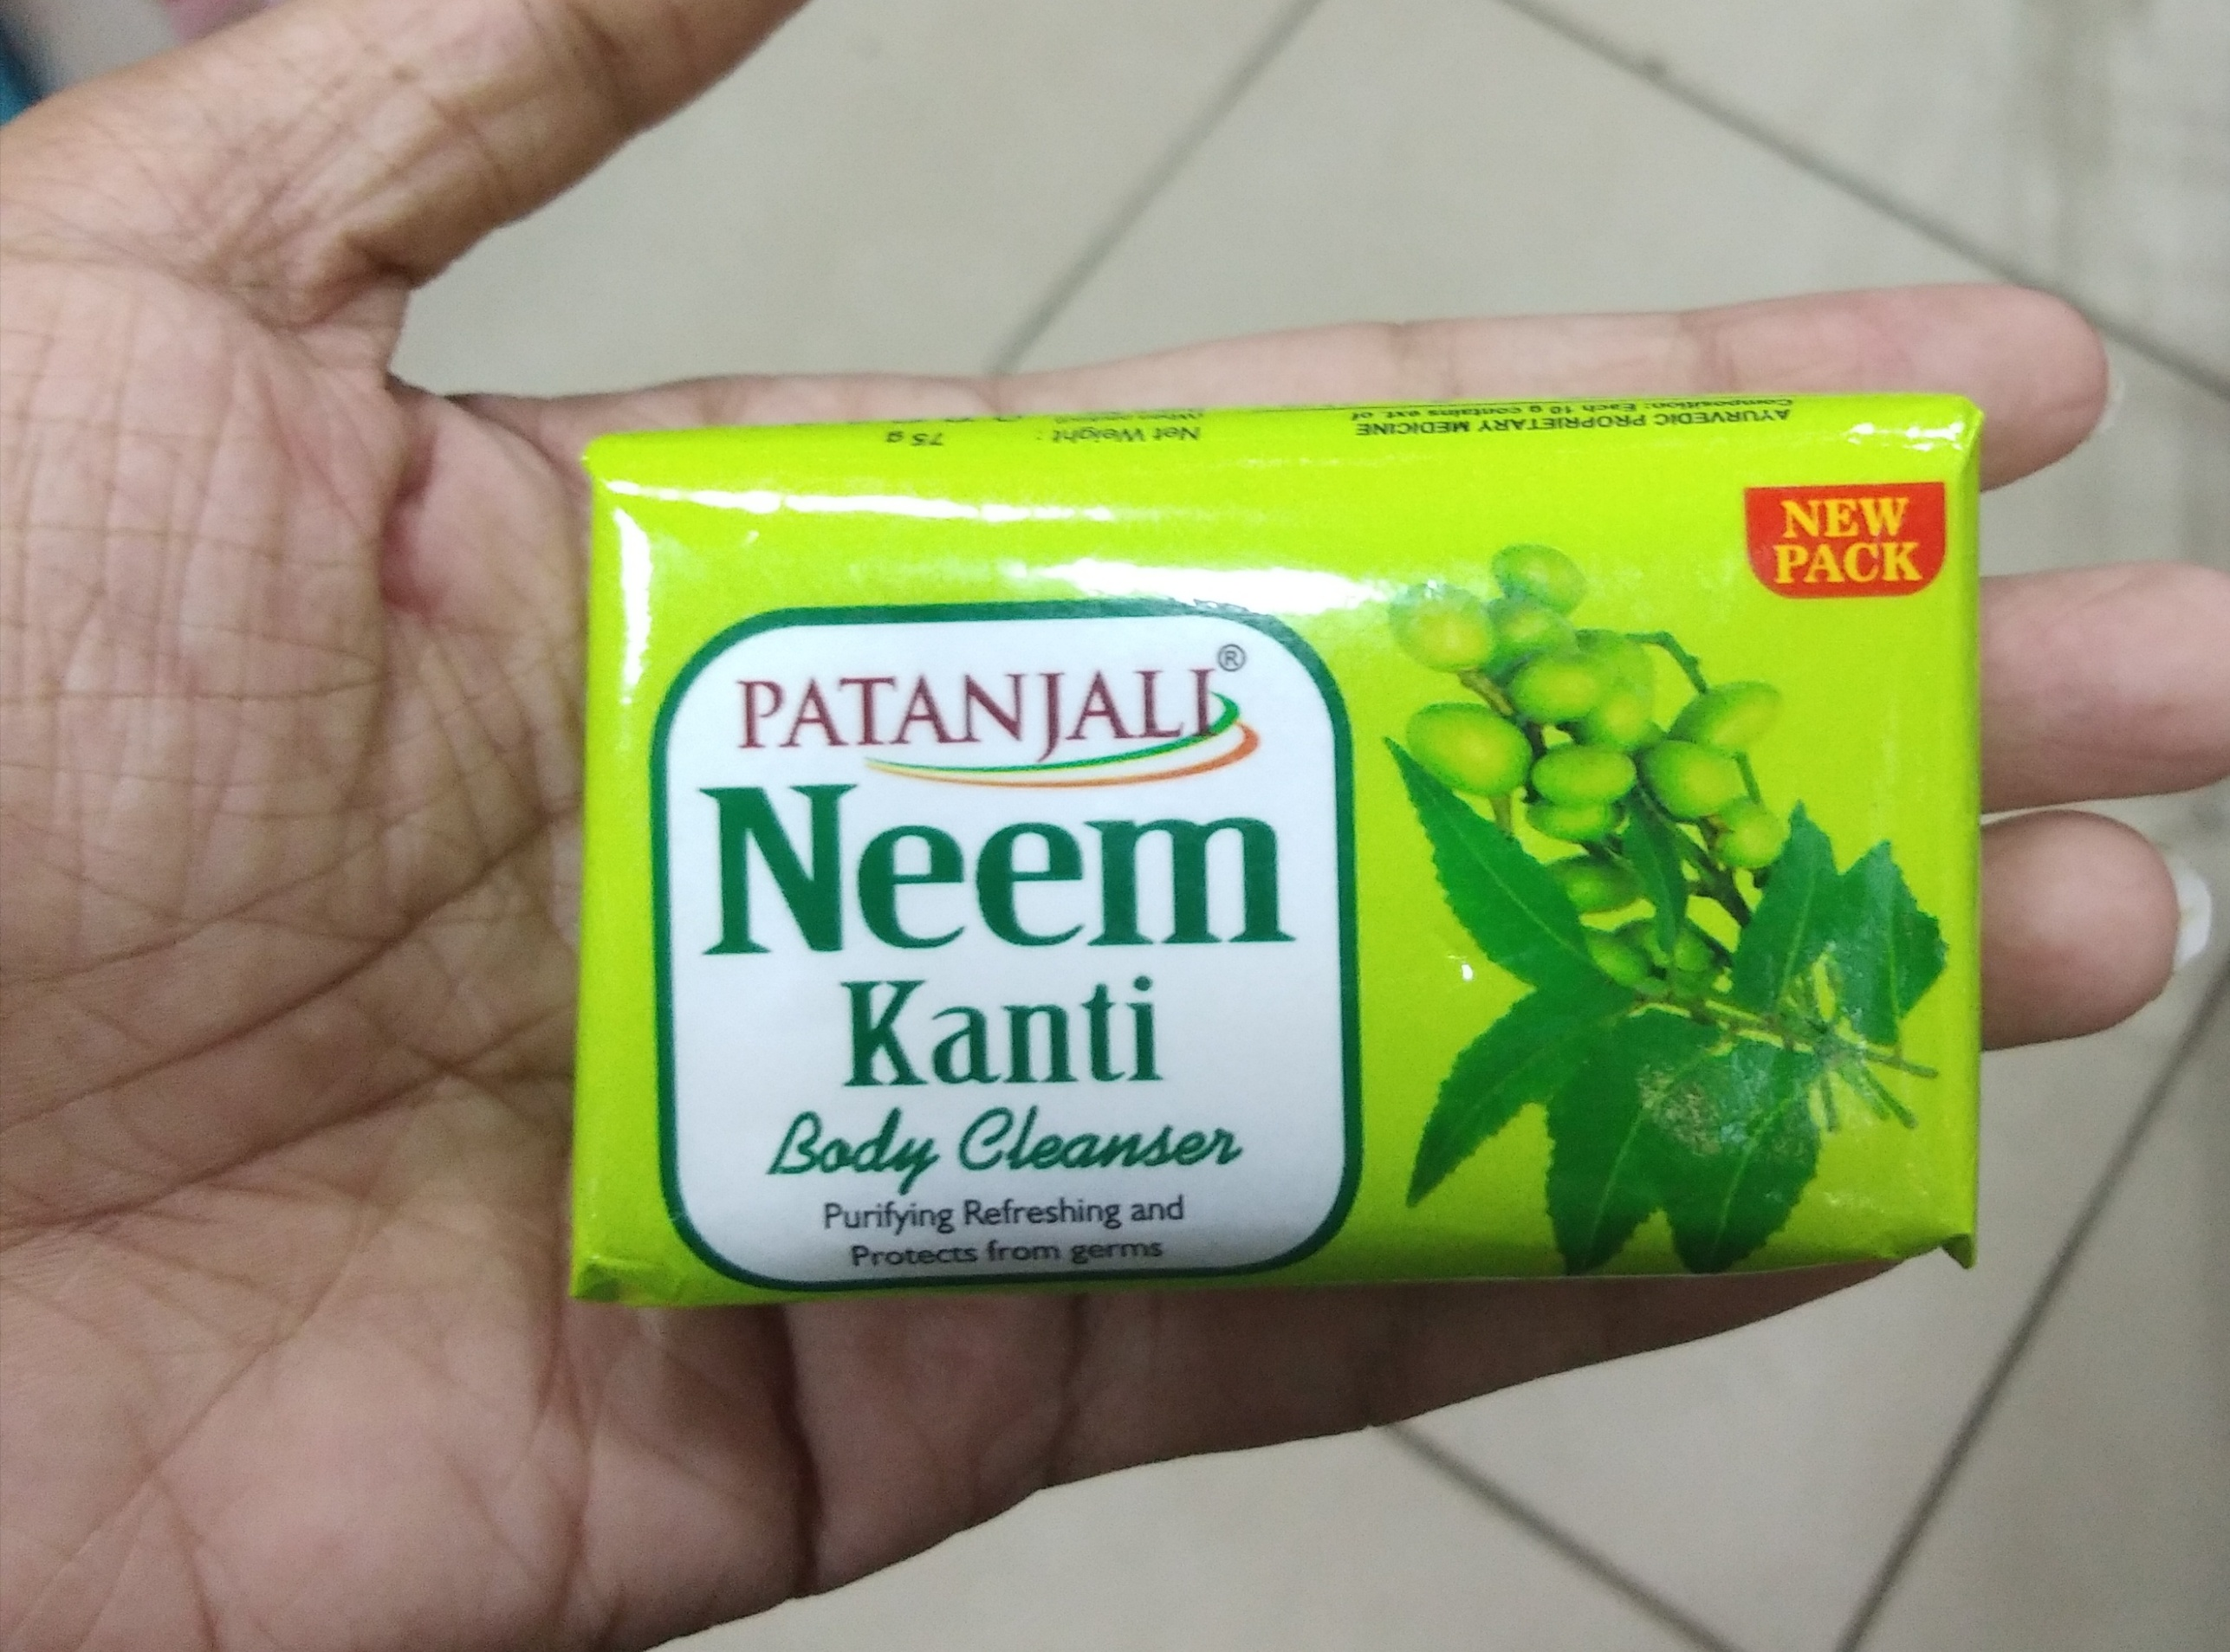 Patanjali Neem Kanti Body Cleanser Soap-Good soap with antibacterial property-By Nasreen-1